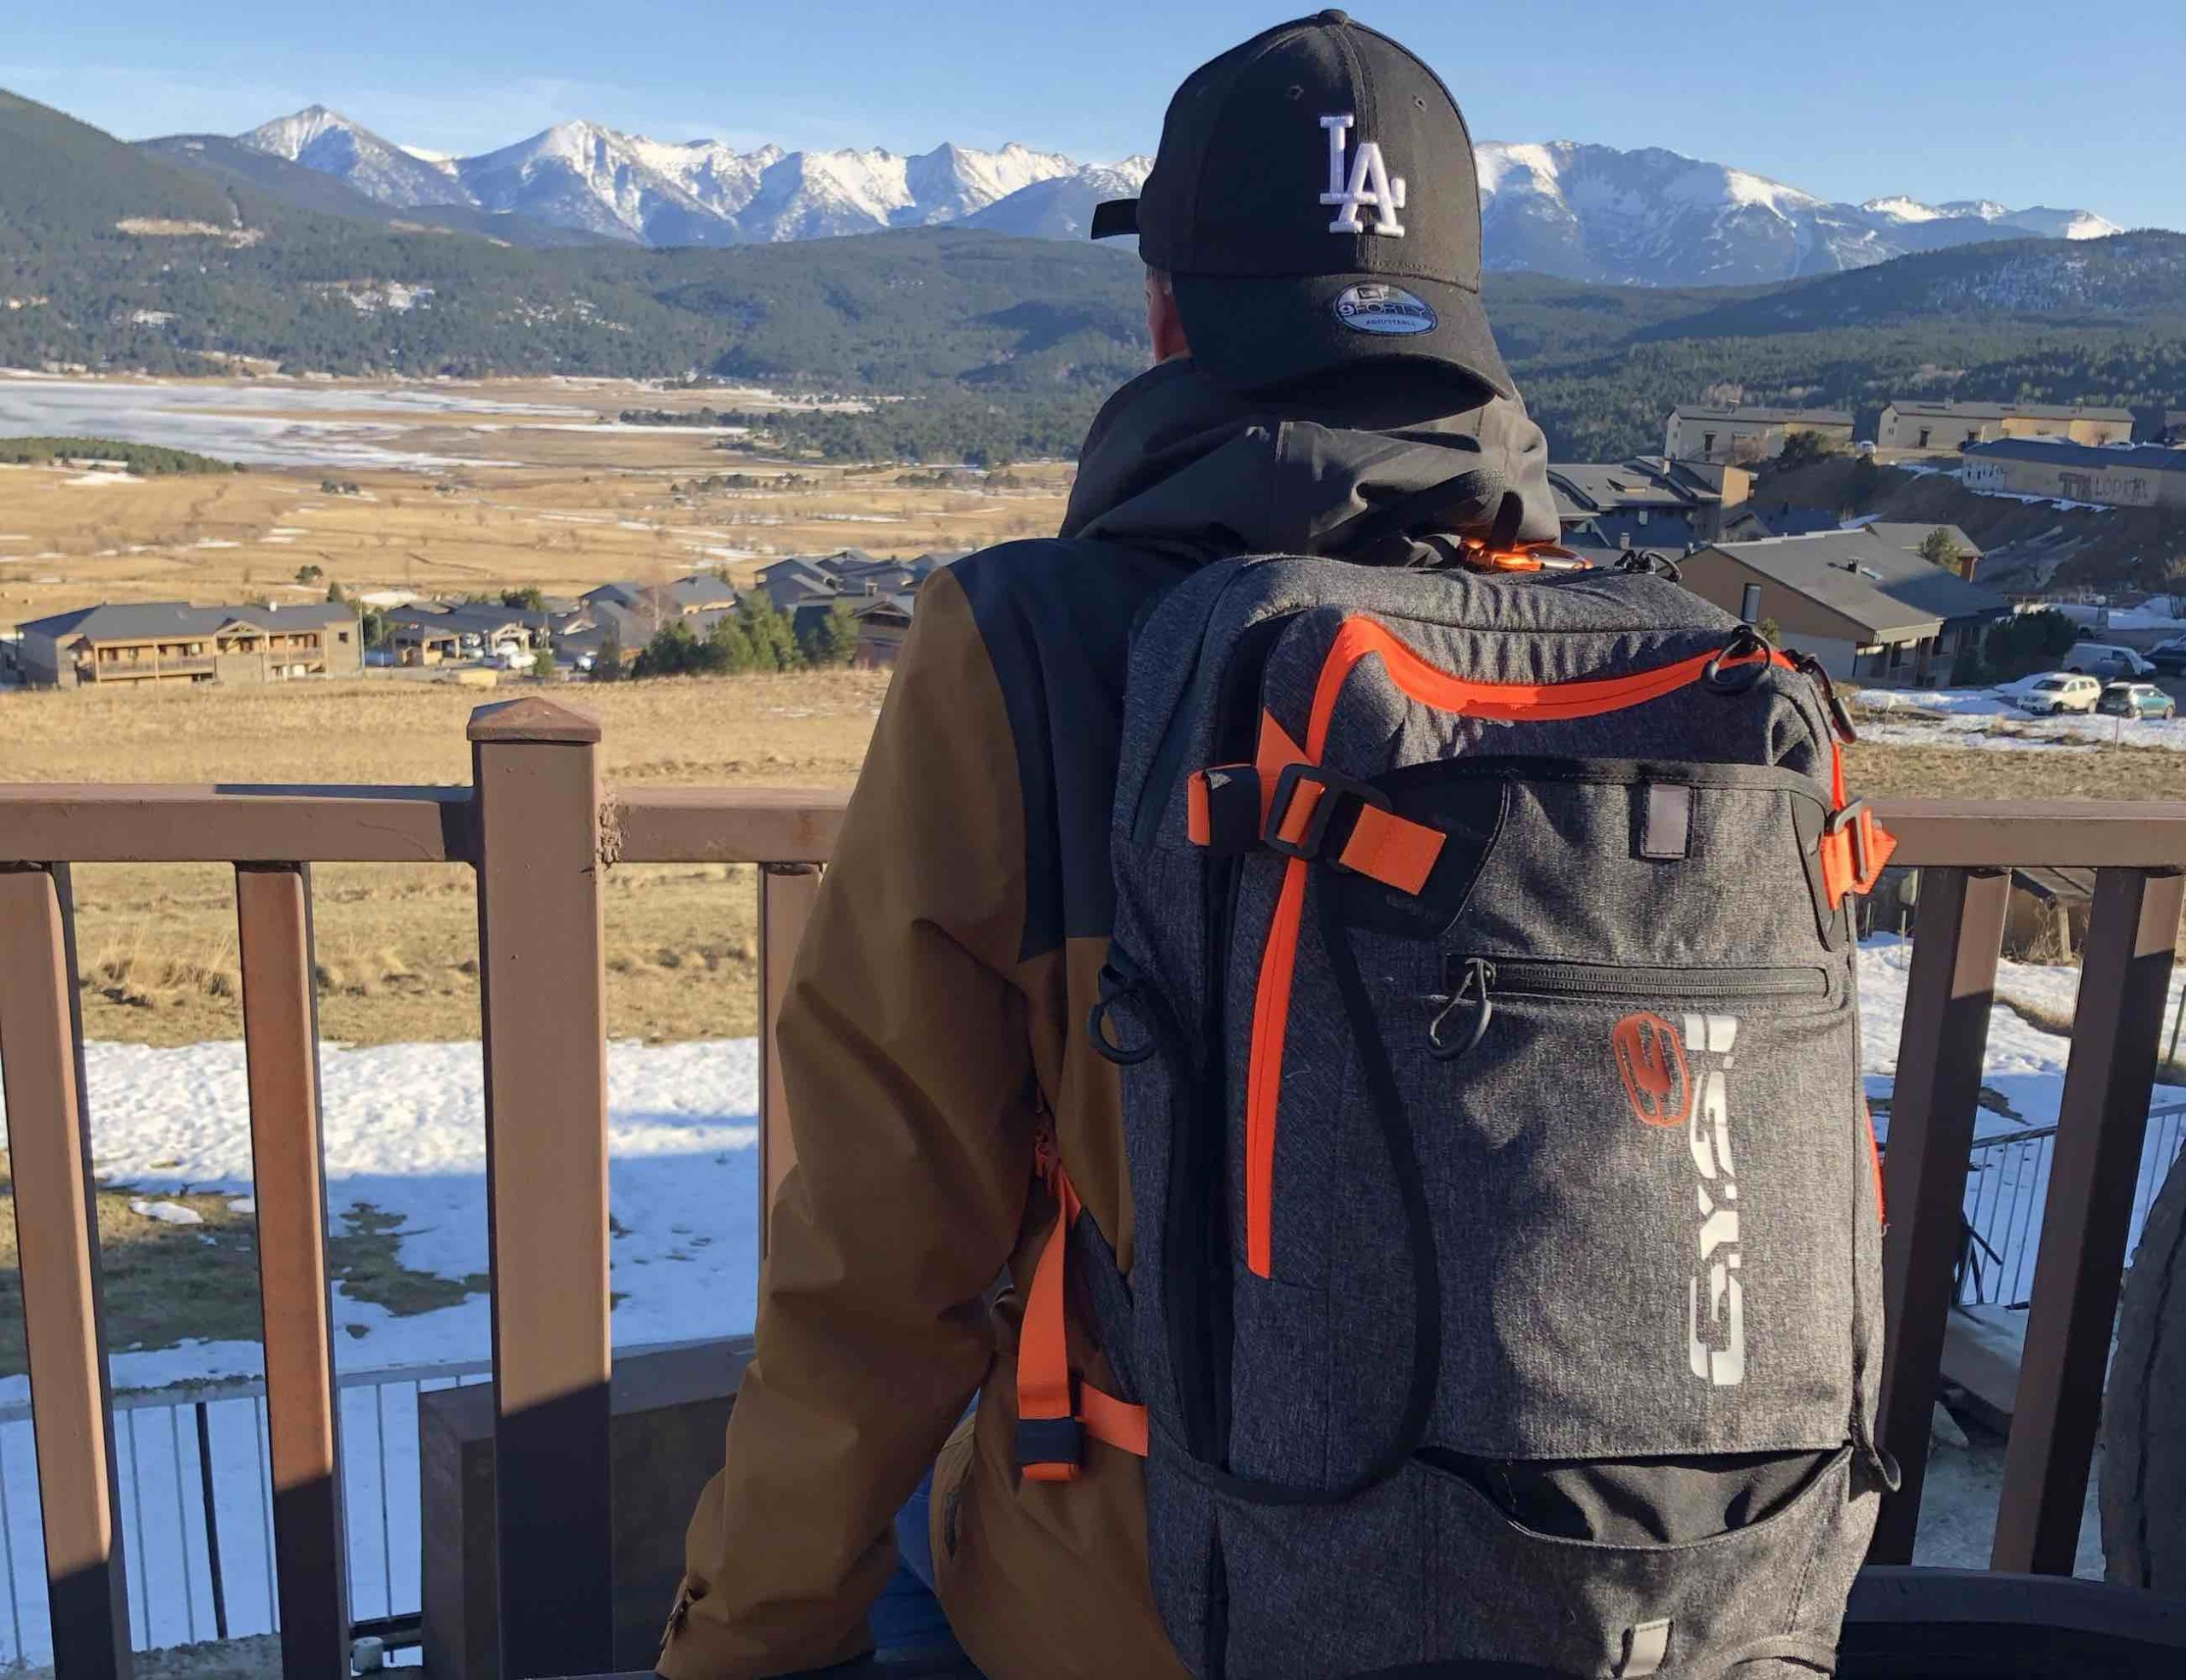 G.Y.S.T 2-in-1 Ultimate Sports Backpack offers the perfect spot for changing out of your gear